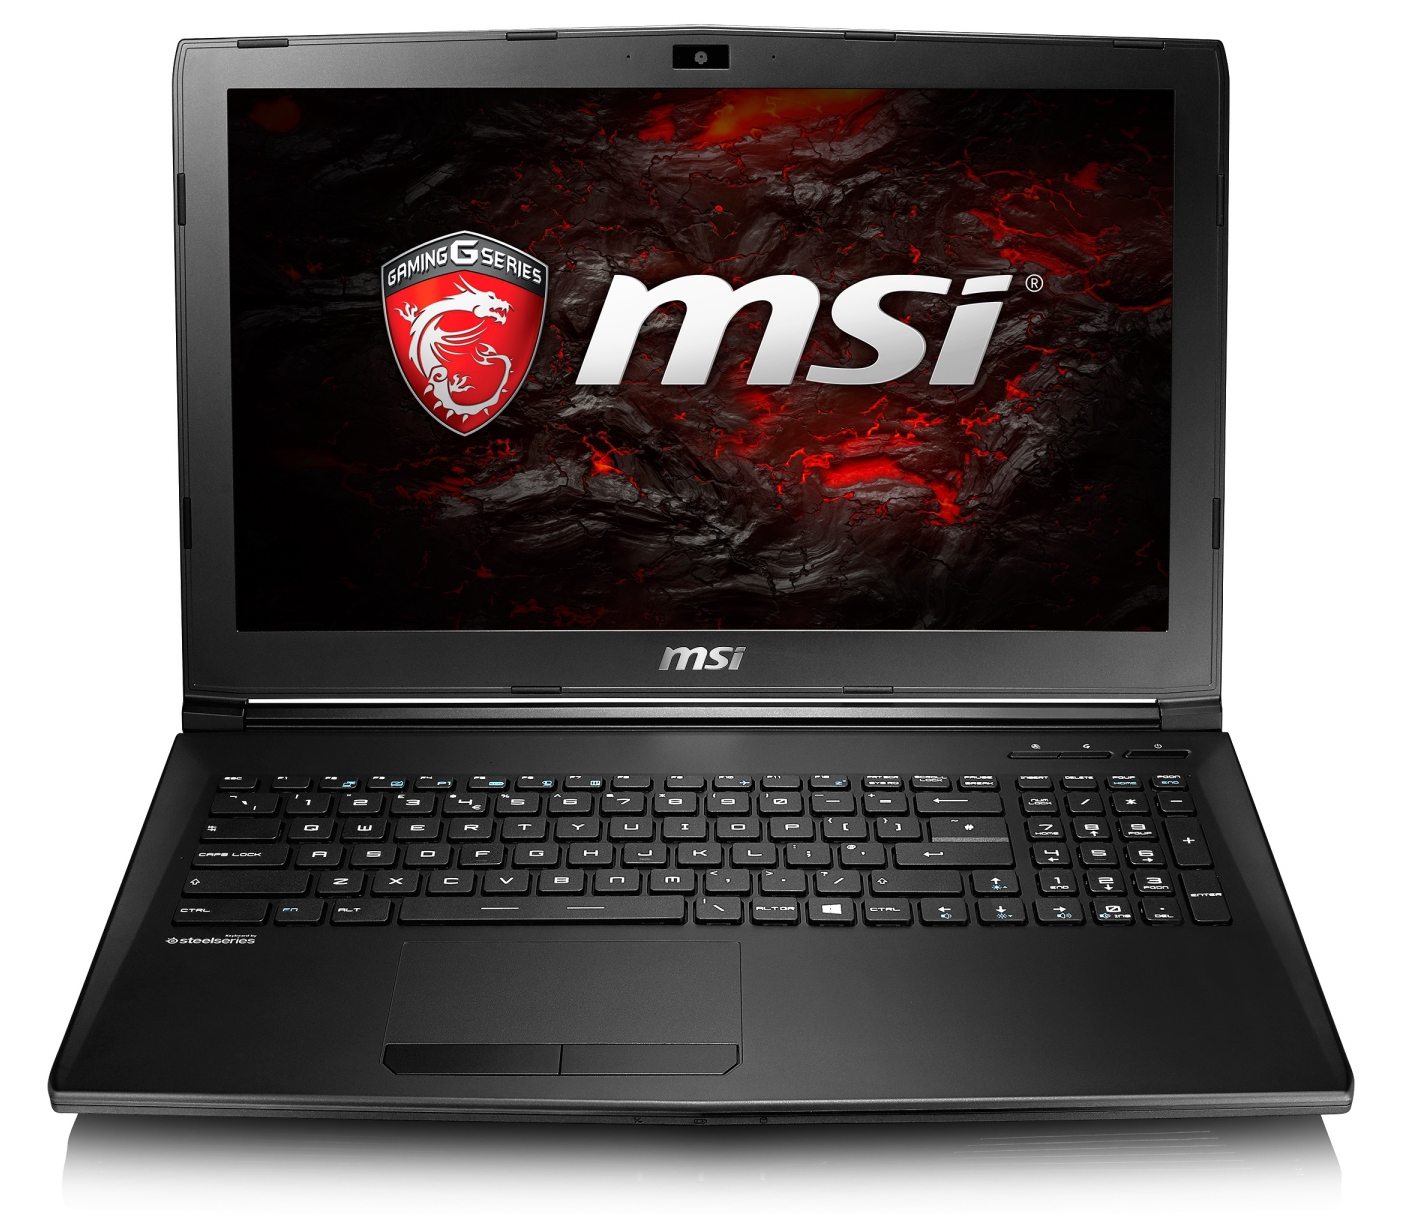 Msi Gl62m 7rd 077 Notebook Review Reviews Free Download 321 Rg Series Wiring Diagram Full Resolution